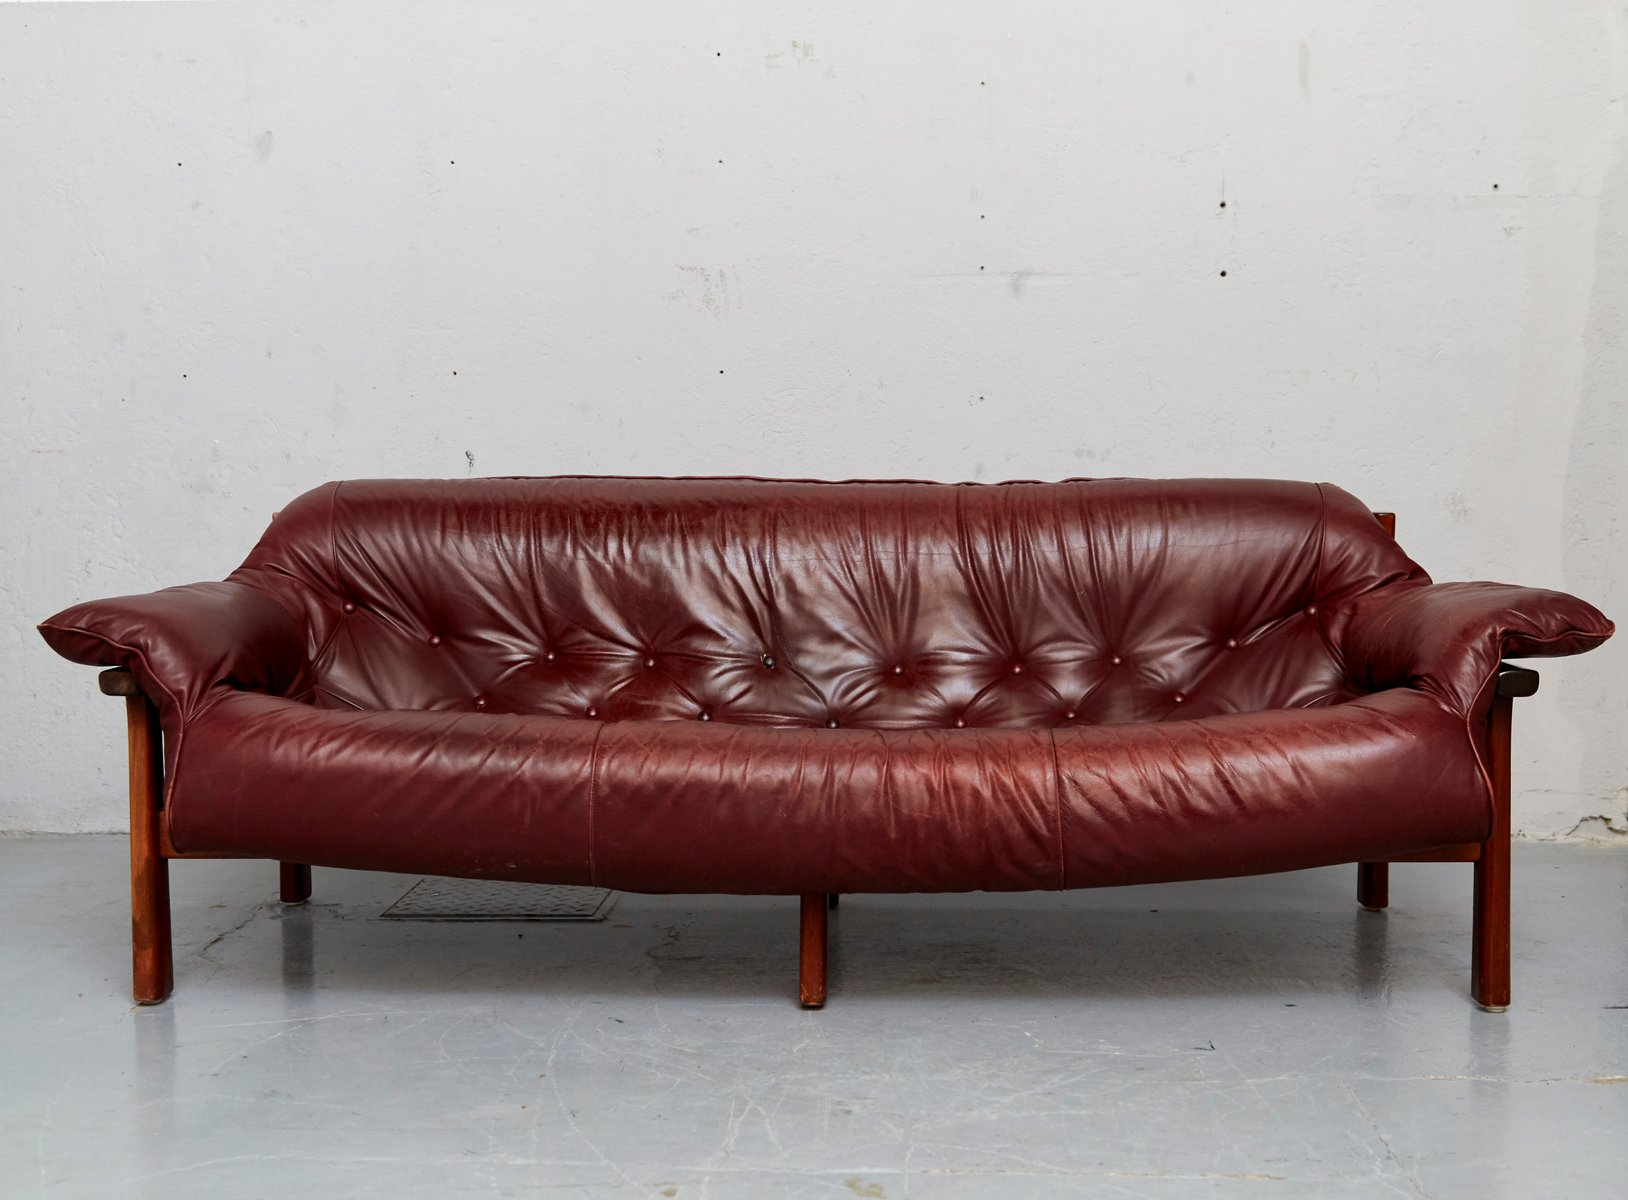 Vintage Sofa by Percival Lafer for Lafer Furniture pany for